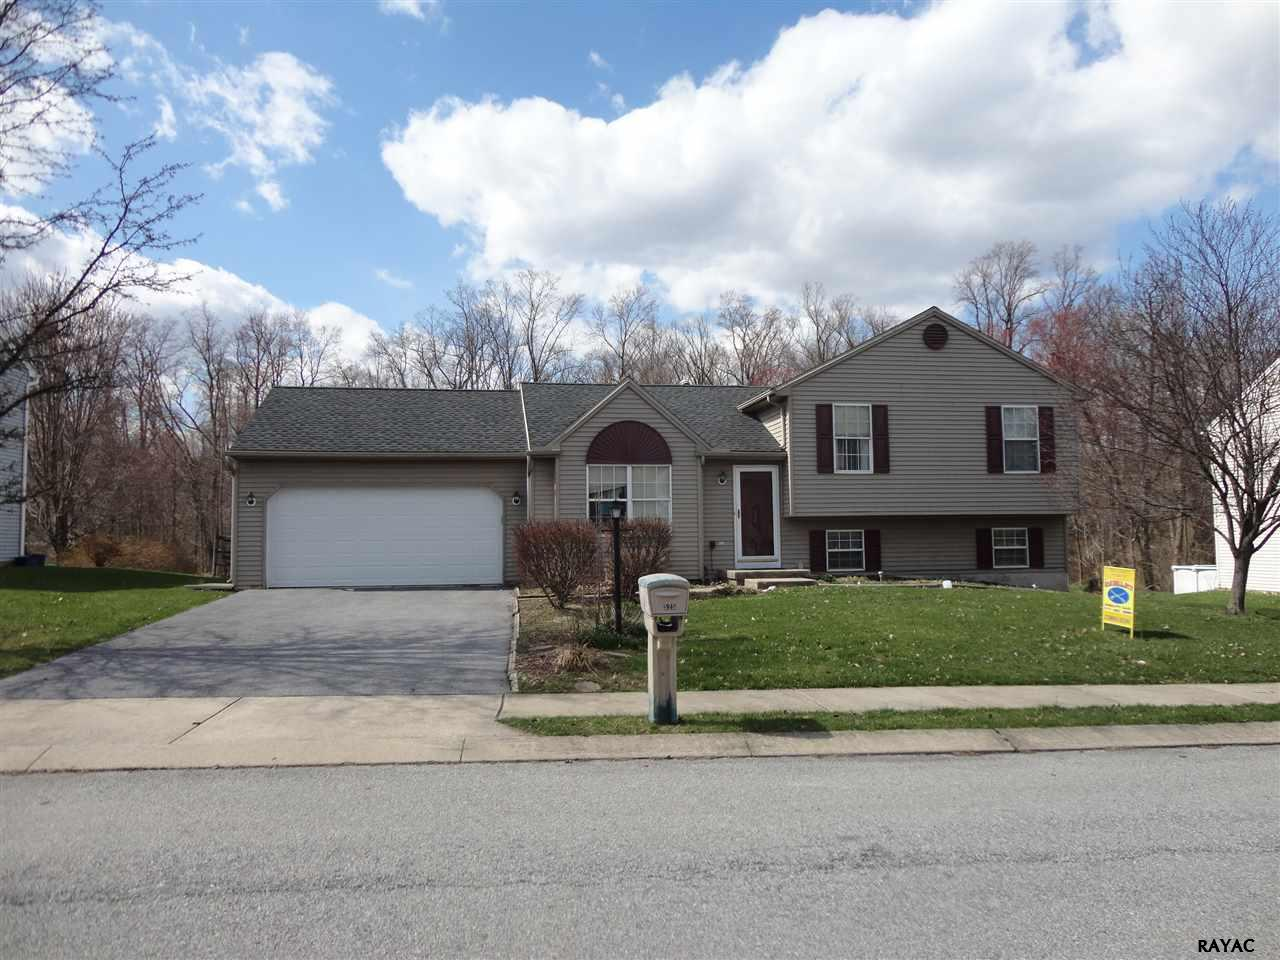 525 Crossing Way, Manchester, PA 17345